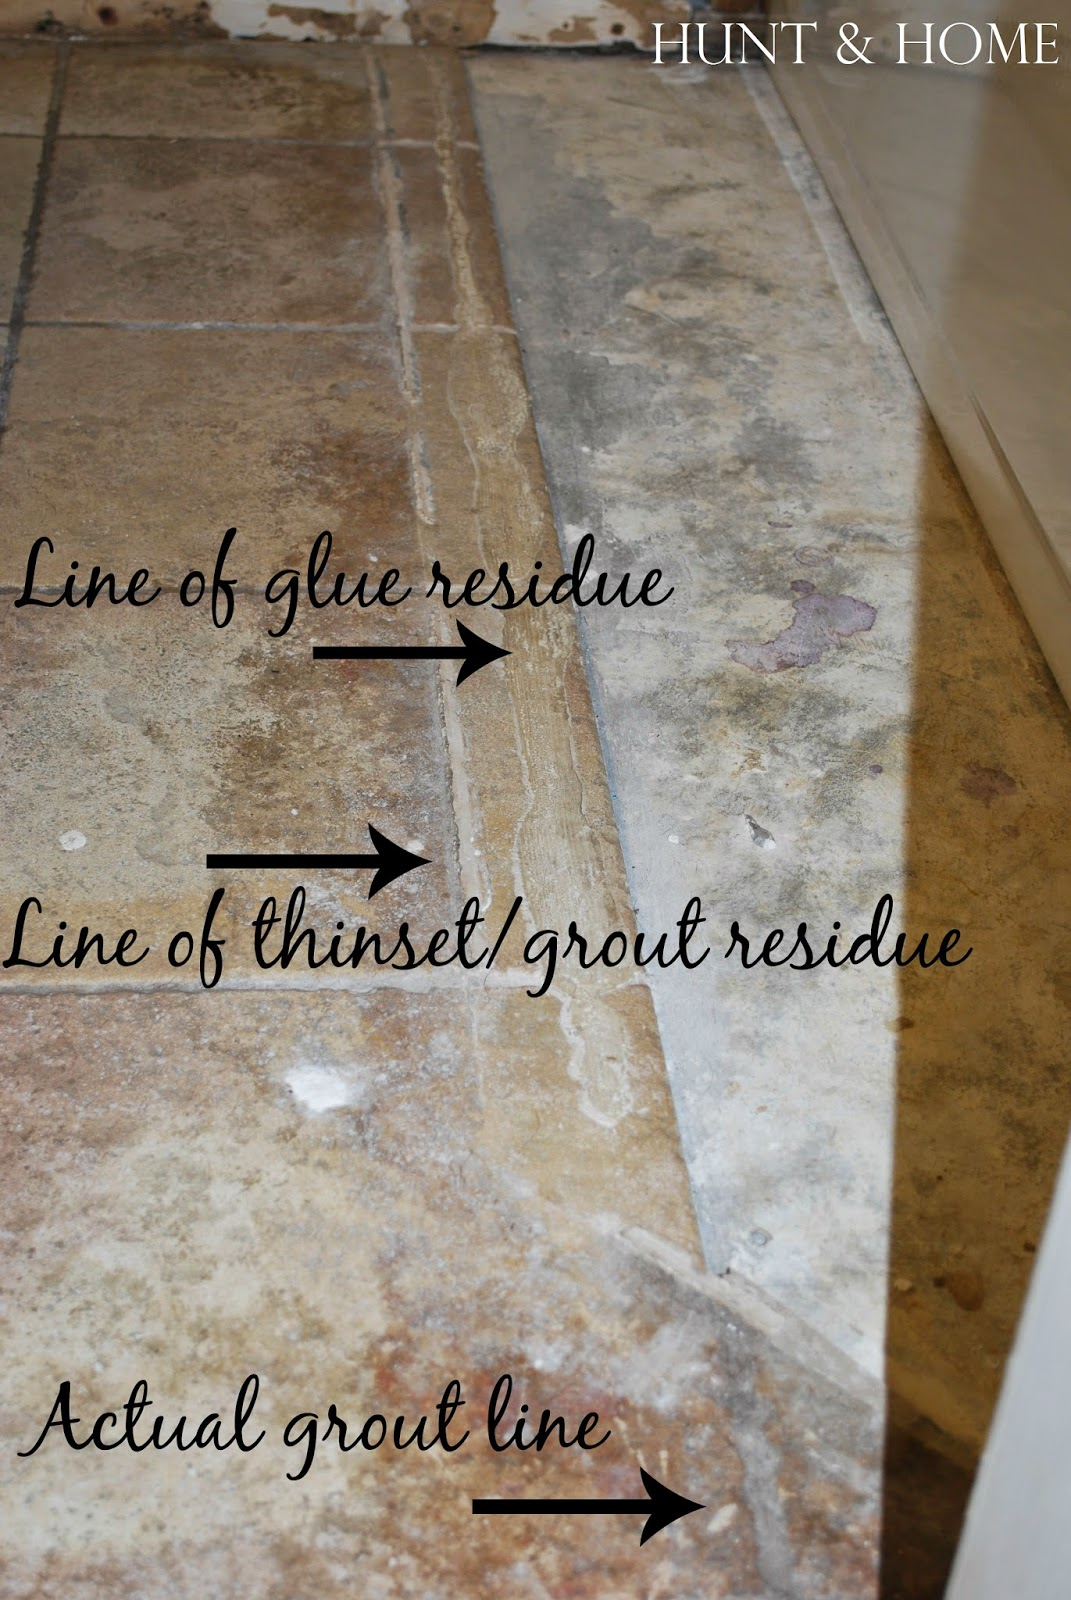 how to clean grout and thinset off tile